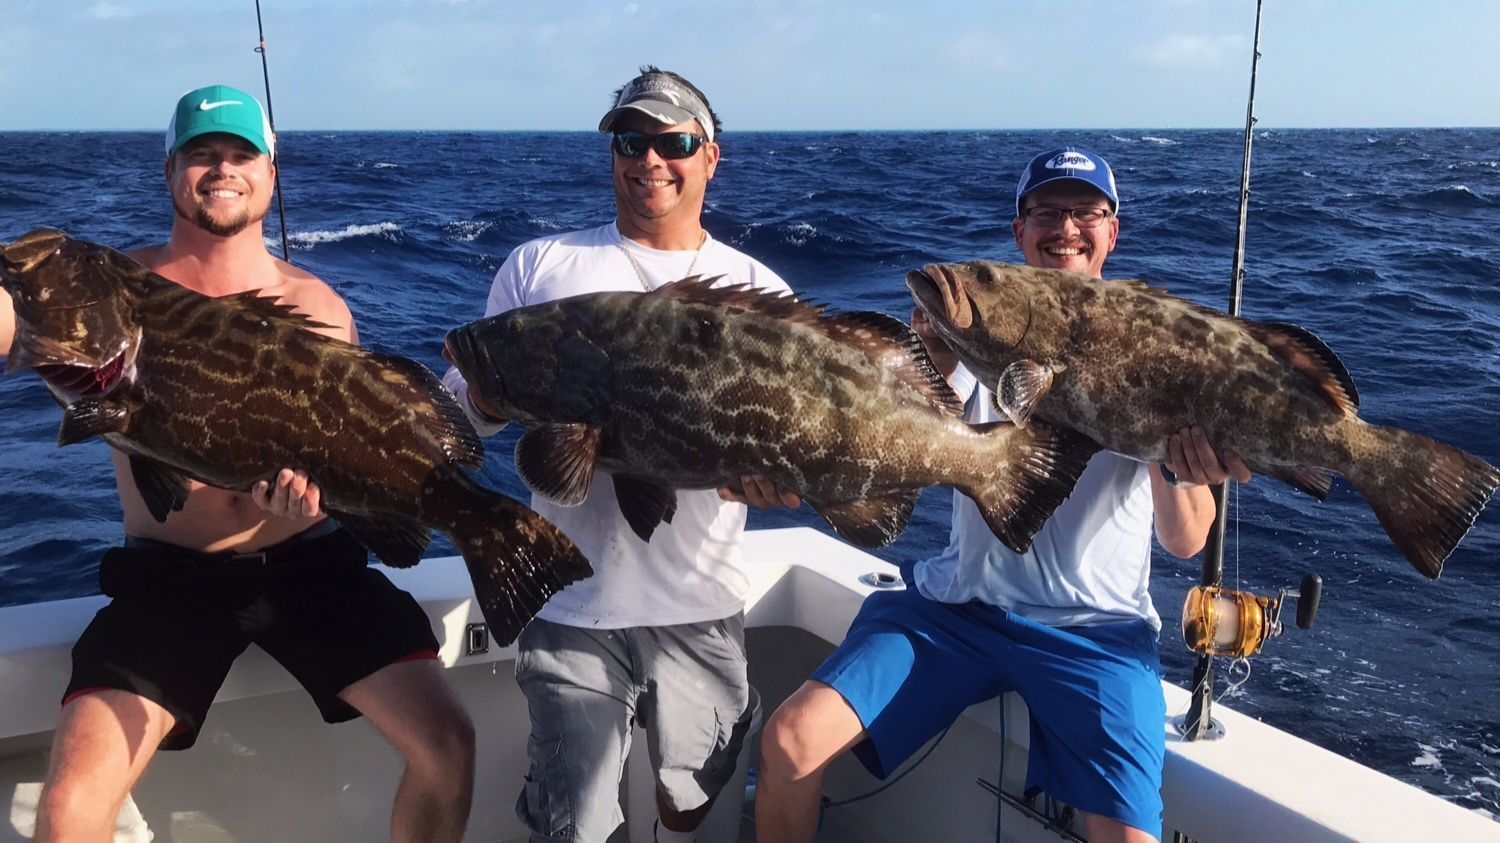 South florida fishing report mutton snappers and tunas for Fishing report florida